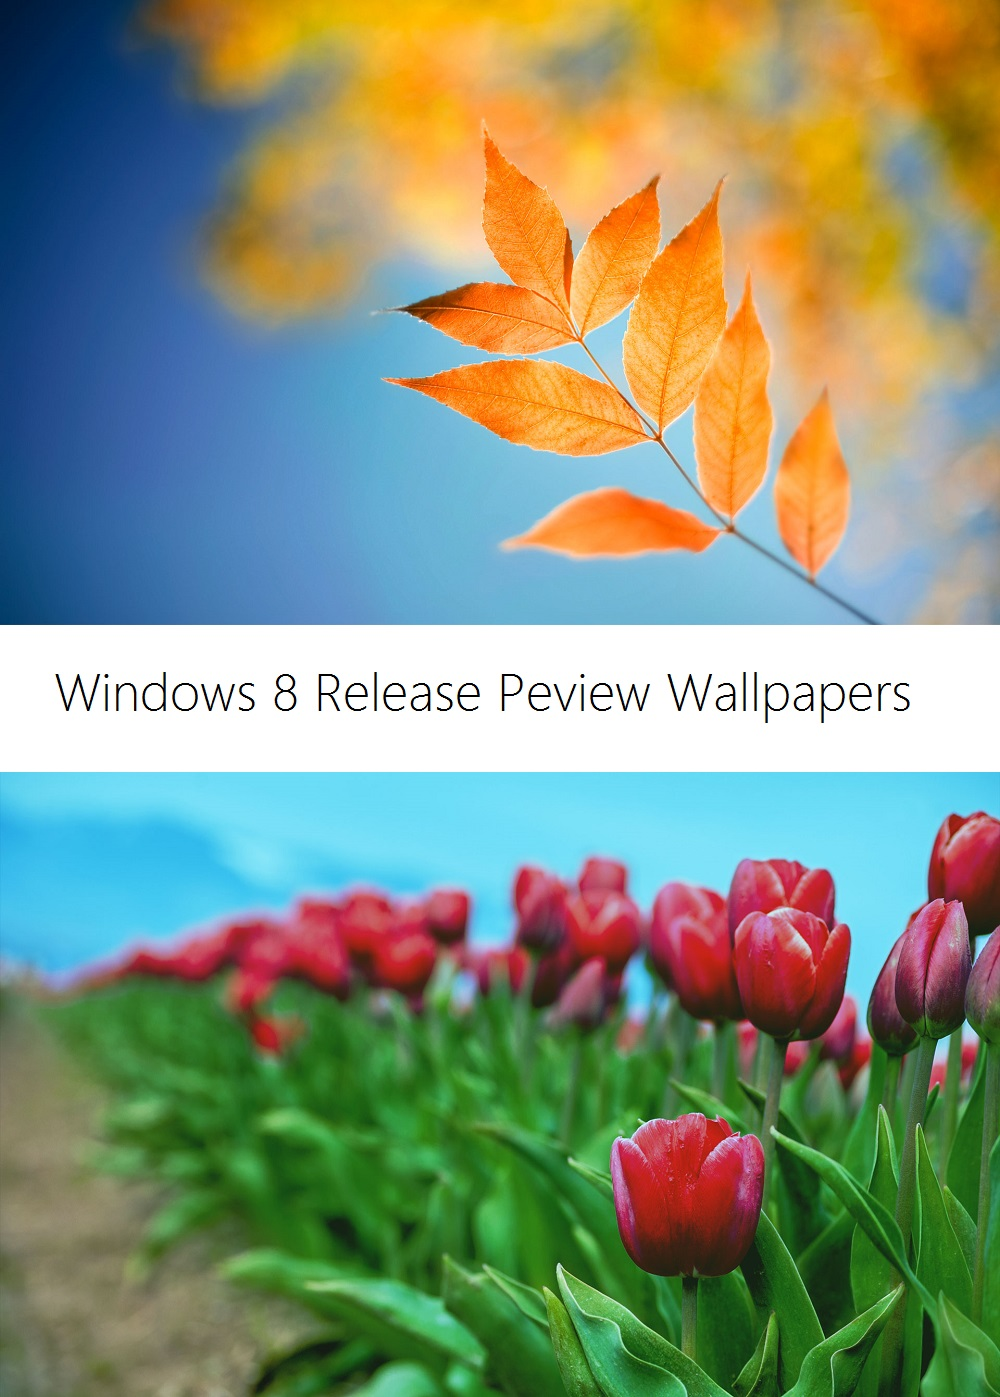 Windows 8 Release Preview Wallpapers by Misaki2009 1000x1397